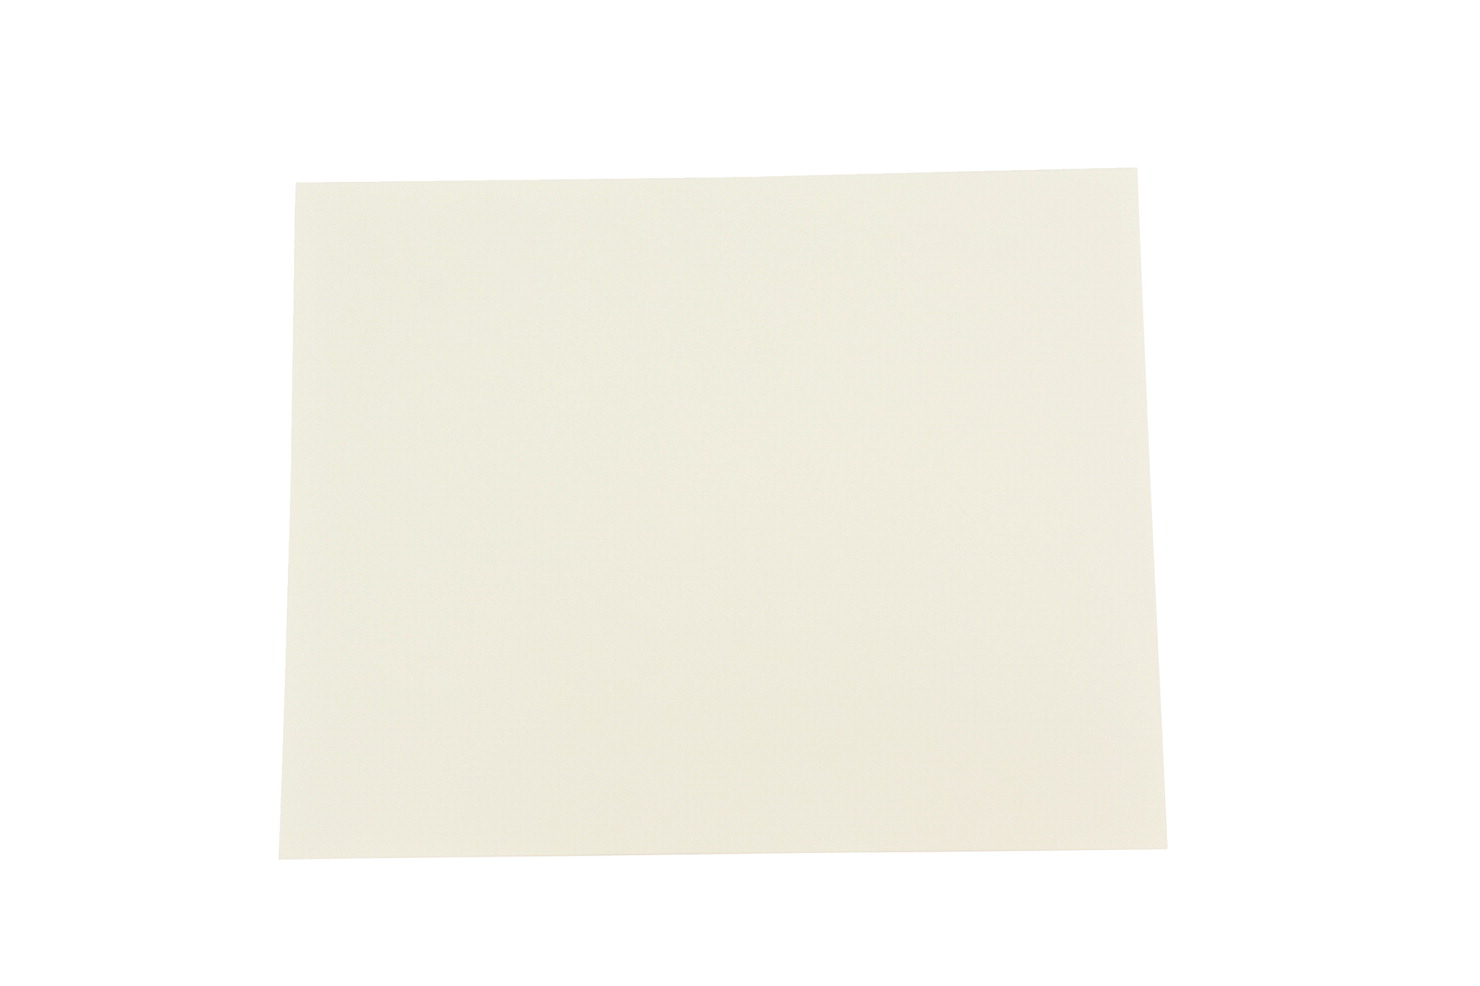 Sax Halifax Cold Press Watercolor Paper, 19 x 24 Inches, 90 lb, White, 25 Sheets